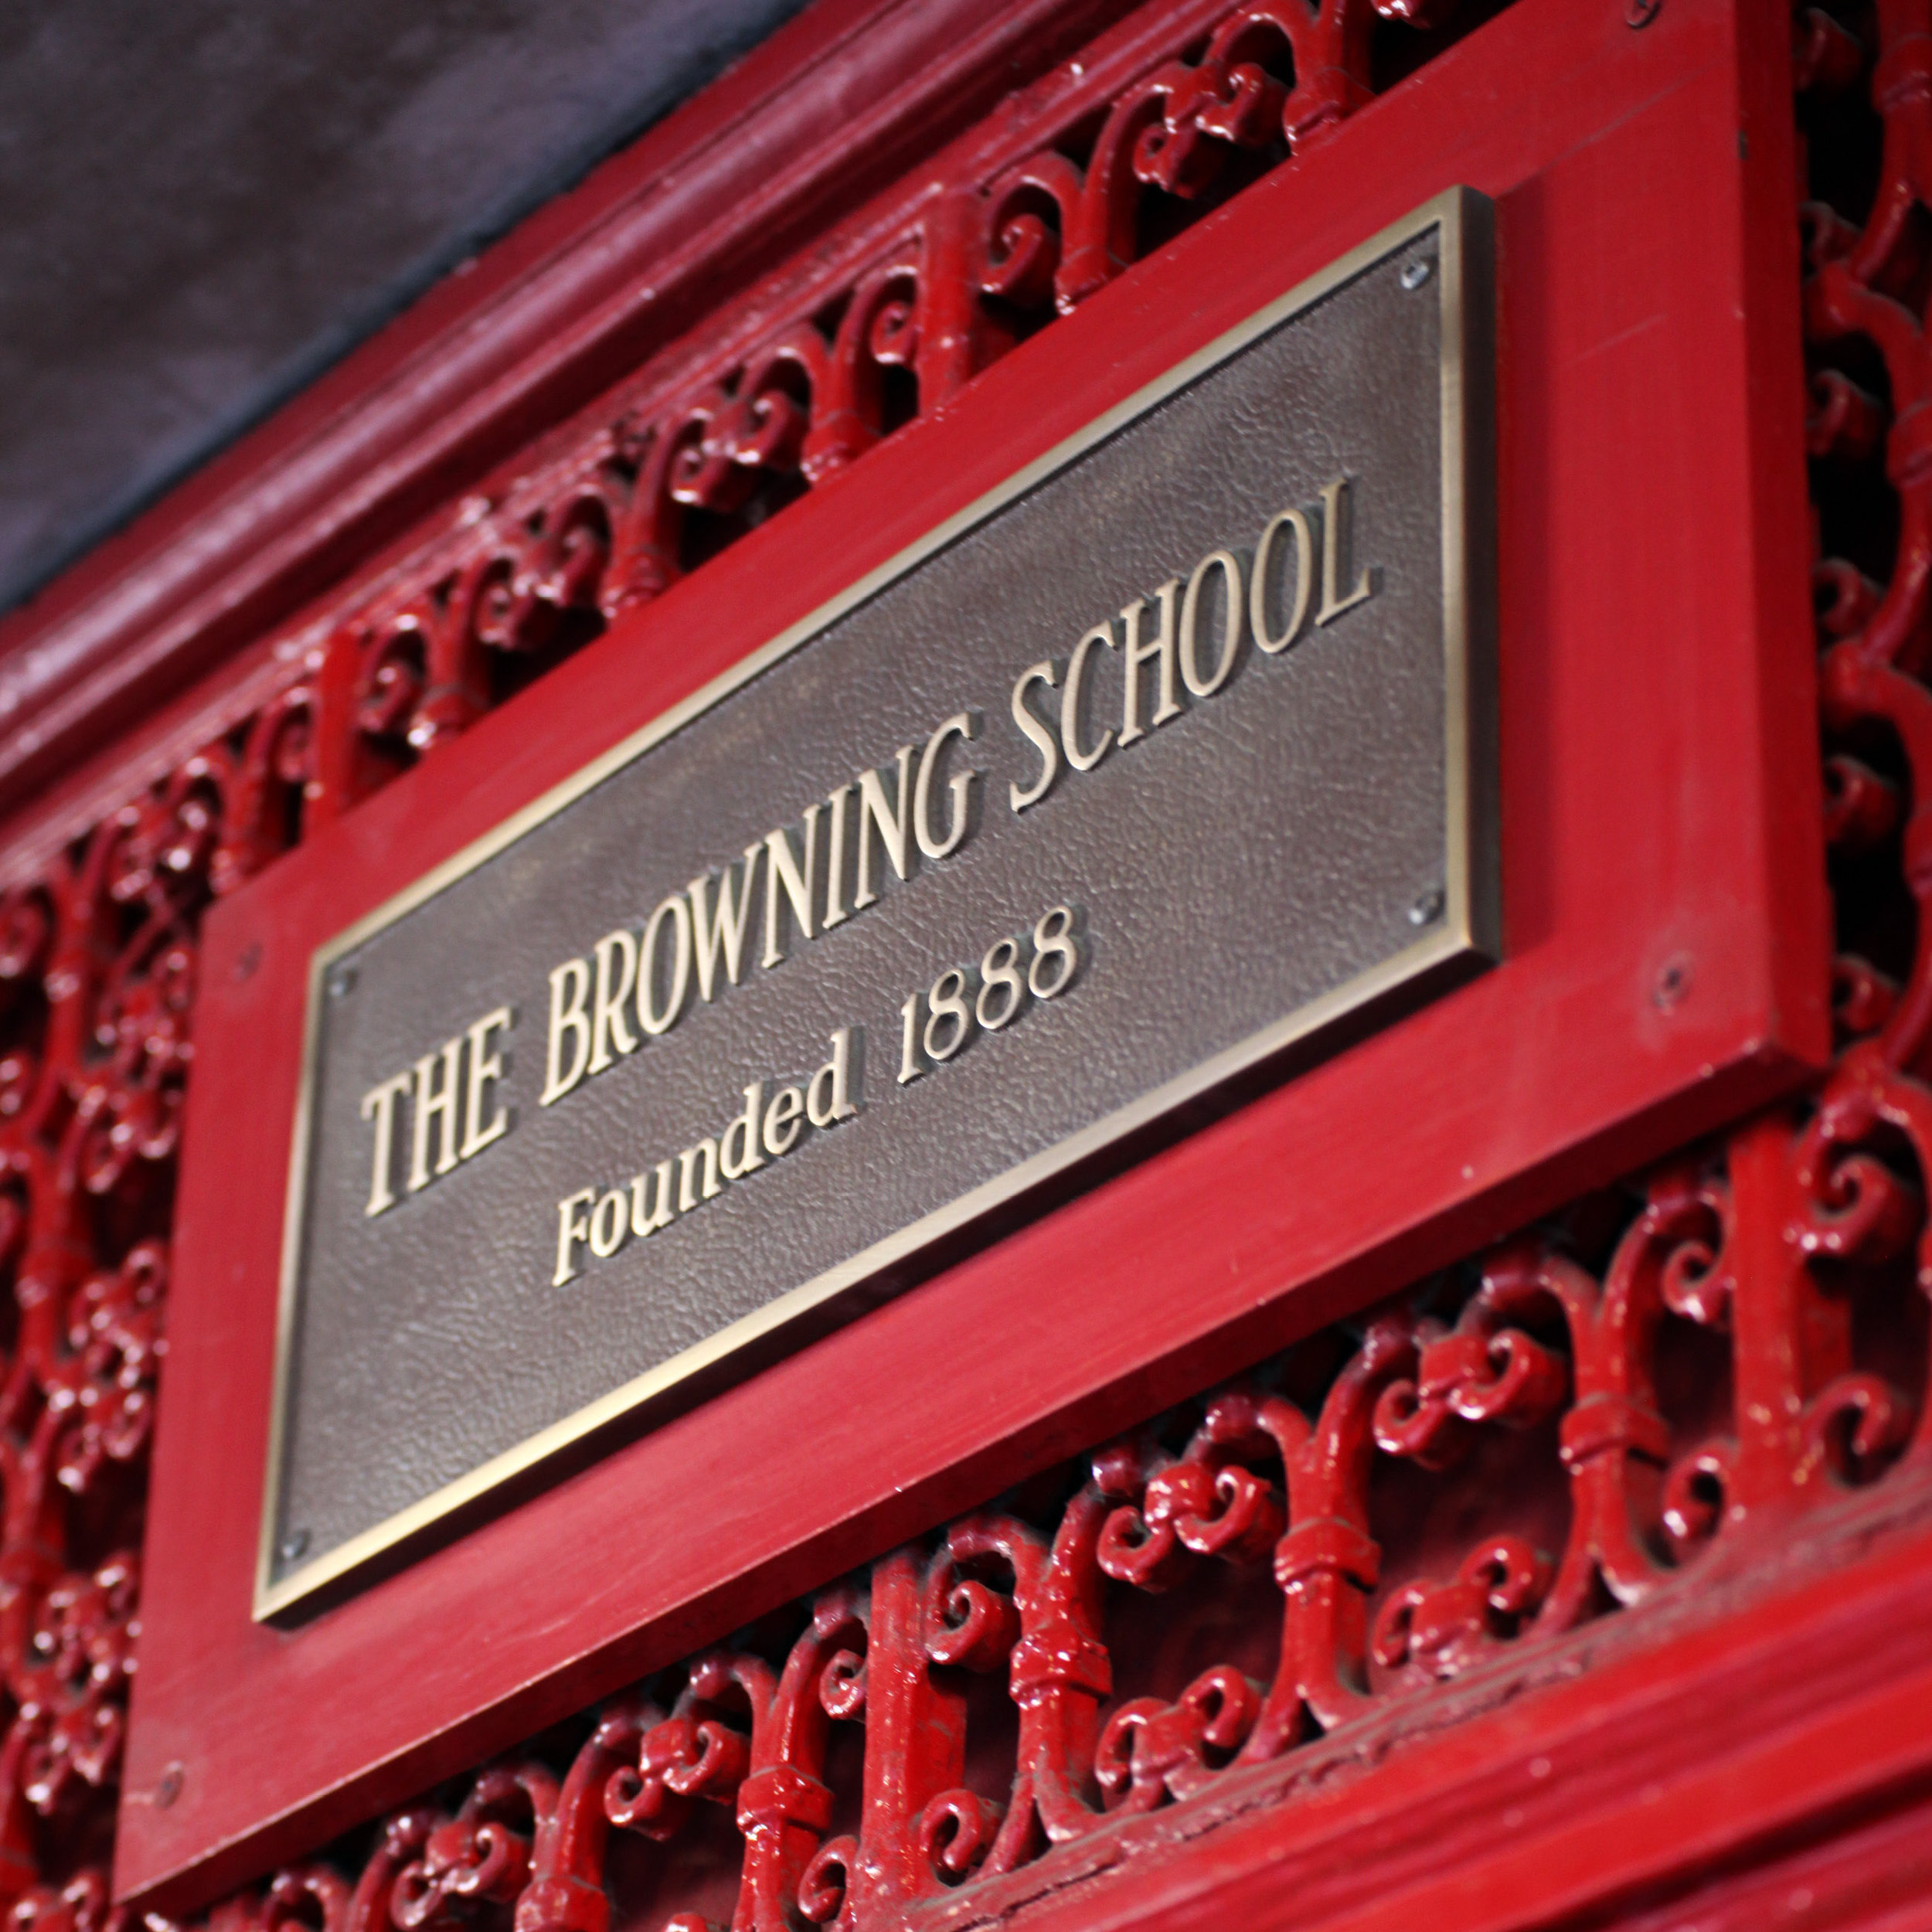 Browning's Philosophy and Public Viewbook - Learn More